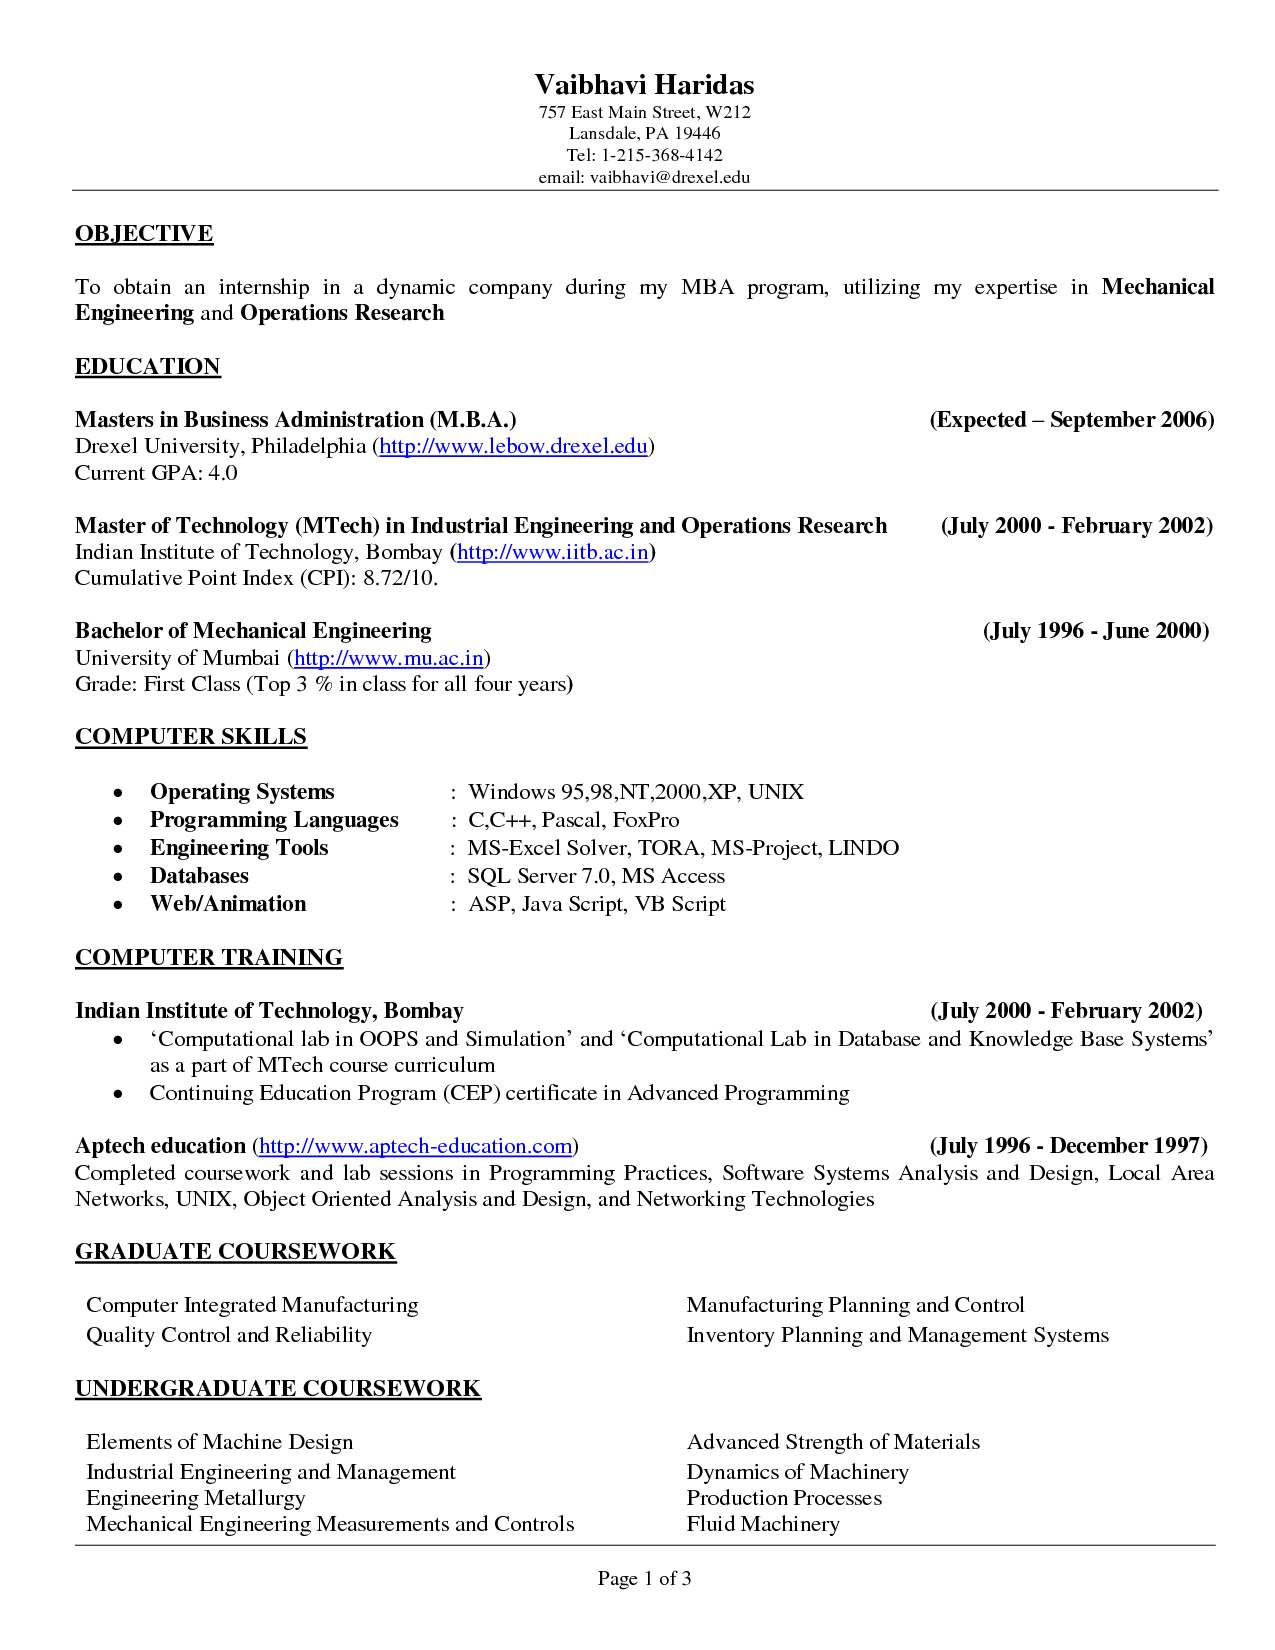 Objectives In Resume Resume Objective Example Best Templateresume Objective Examples